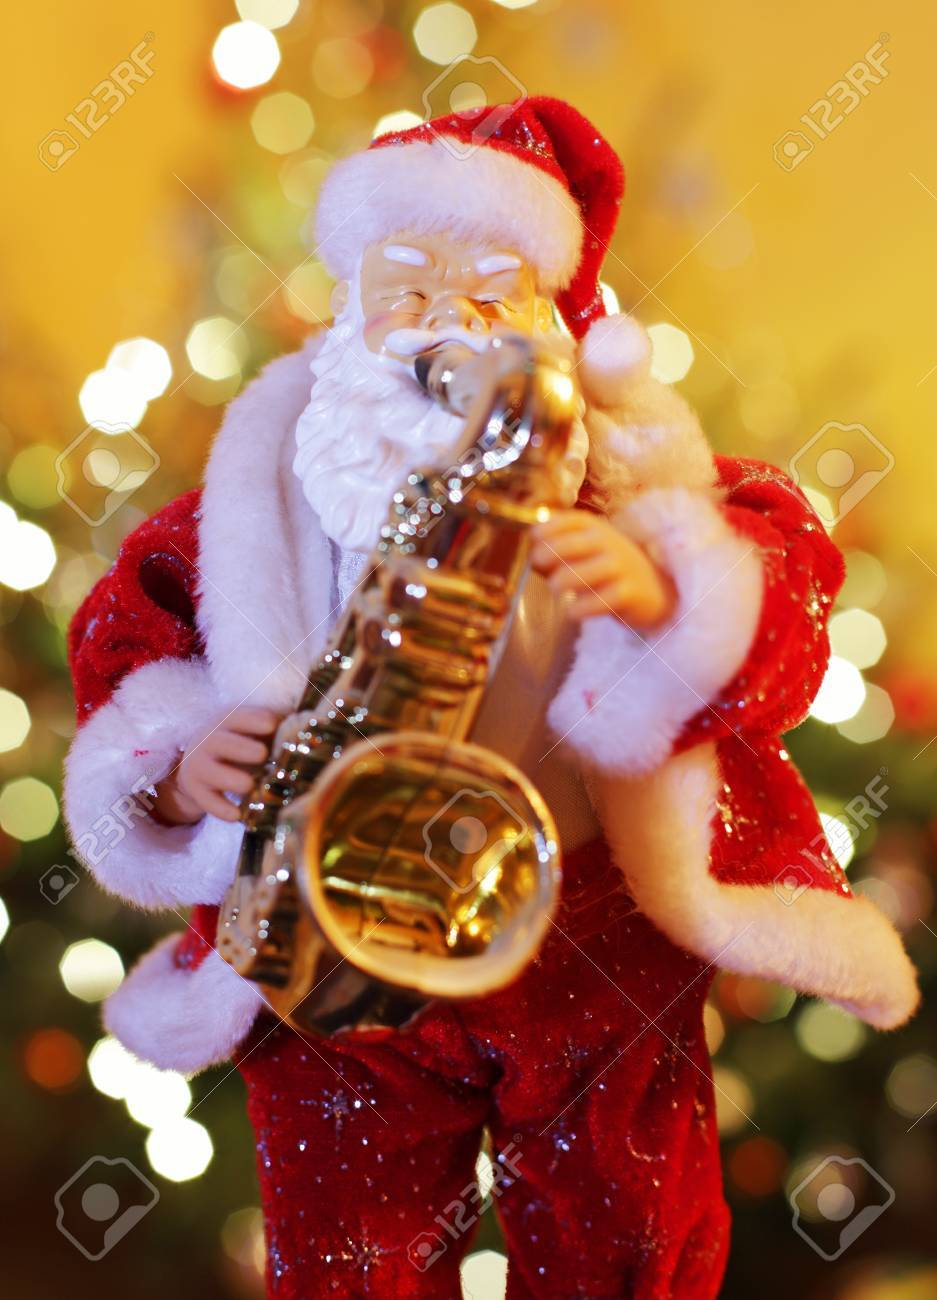 Musical christmas ornaments that play music - Santa Claus Figurine Playing Music On Saxophone Stock Photo 54395891